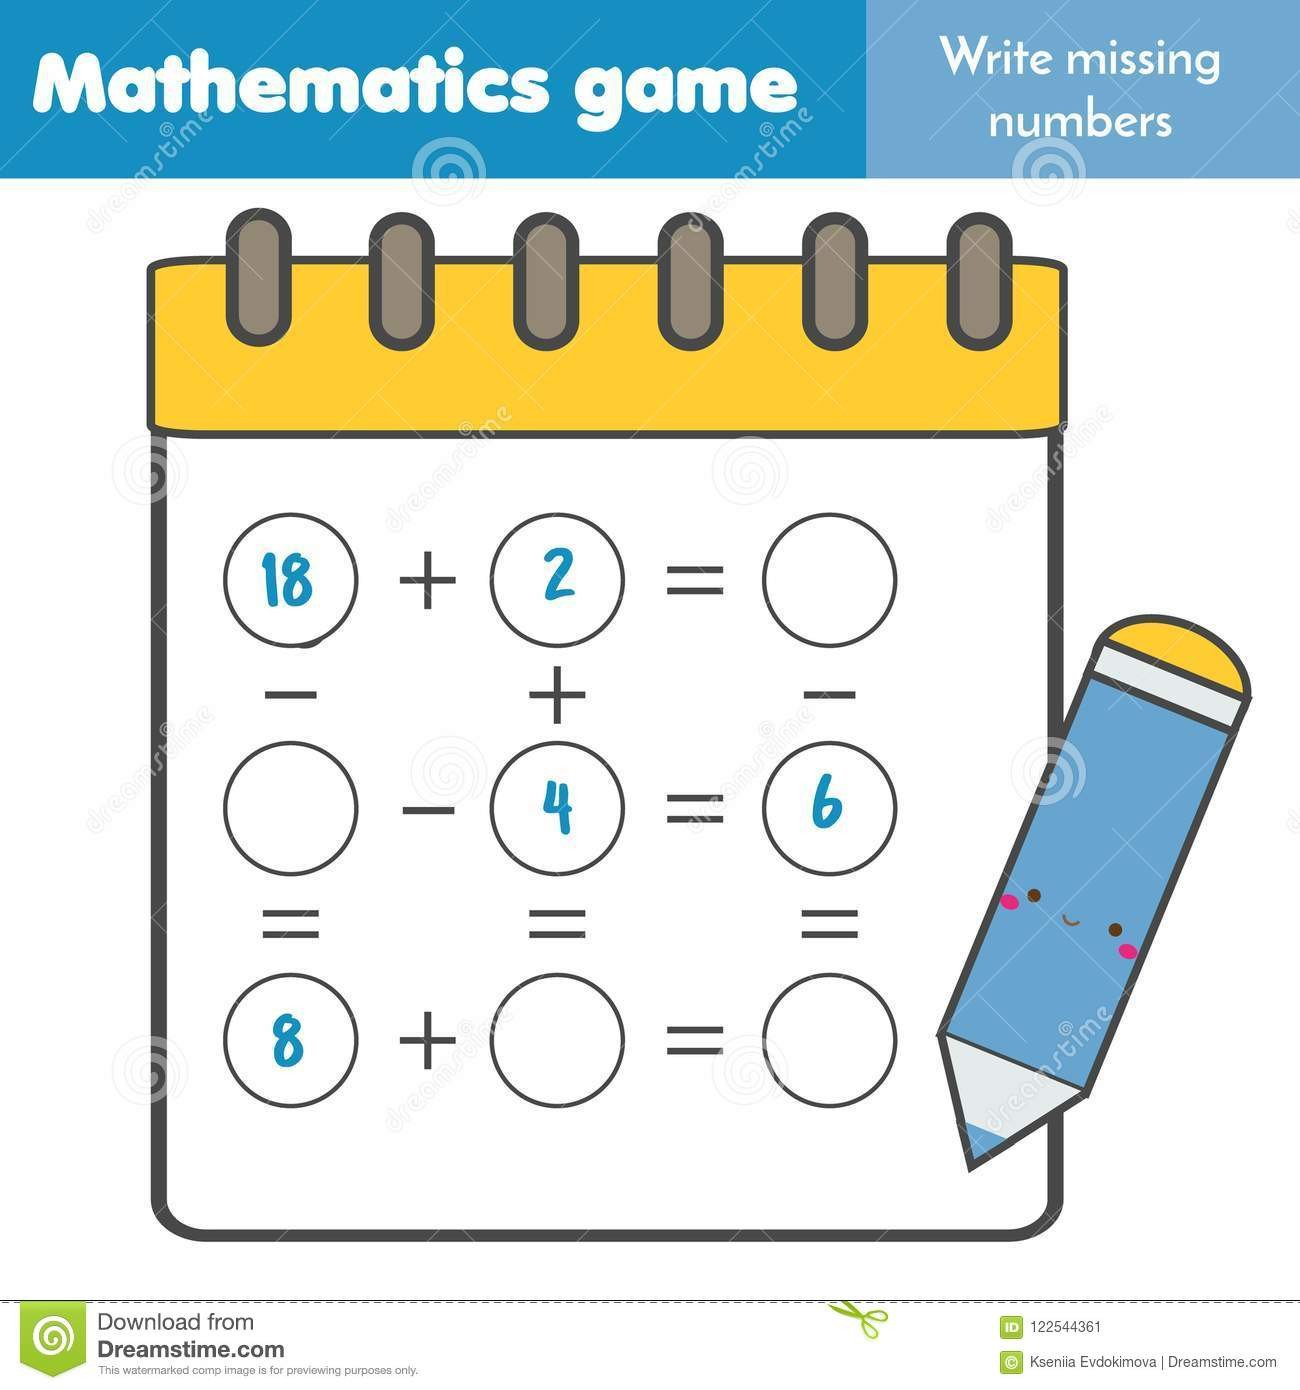 Missing Numbers In Equations Worksheets Educational Game for Children Plete Equations Study